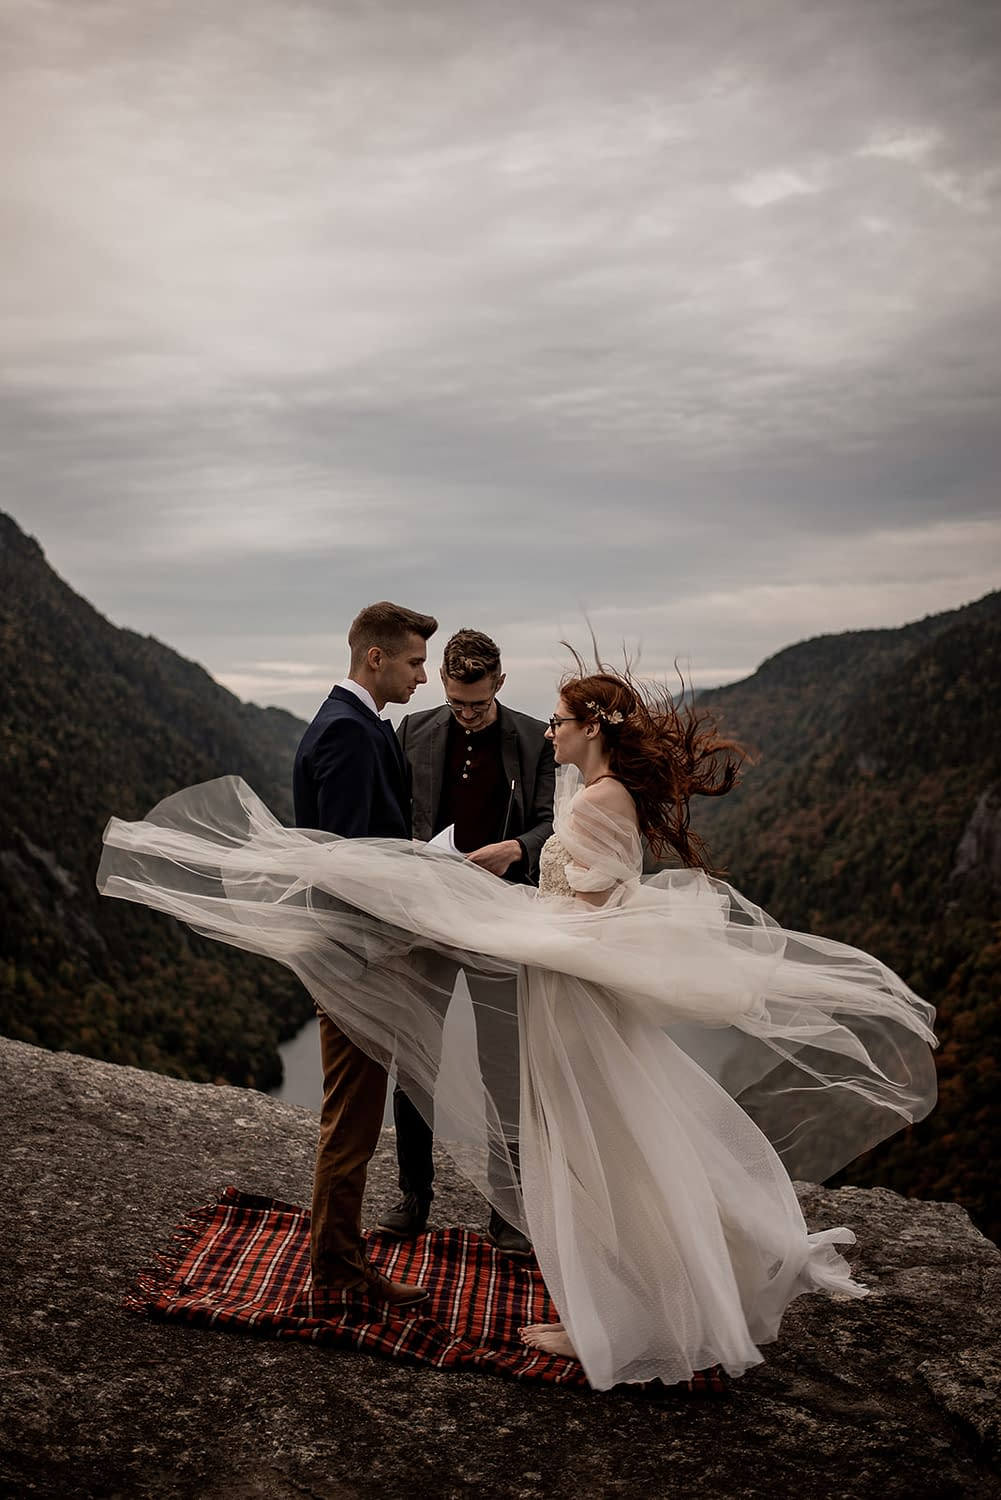 Mountaintop elopement in the ADKs on Indian Head, Keene Valley